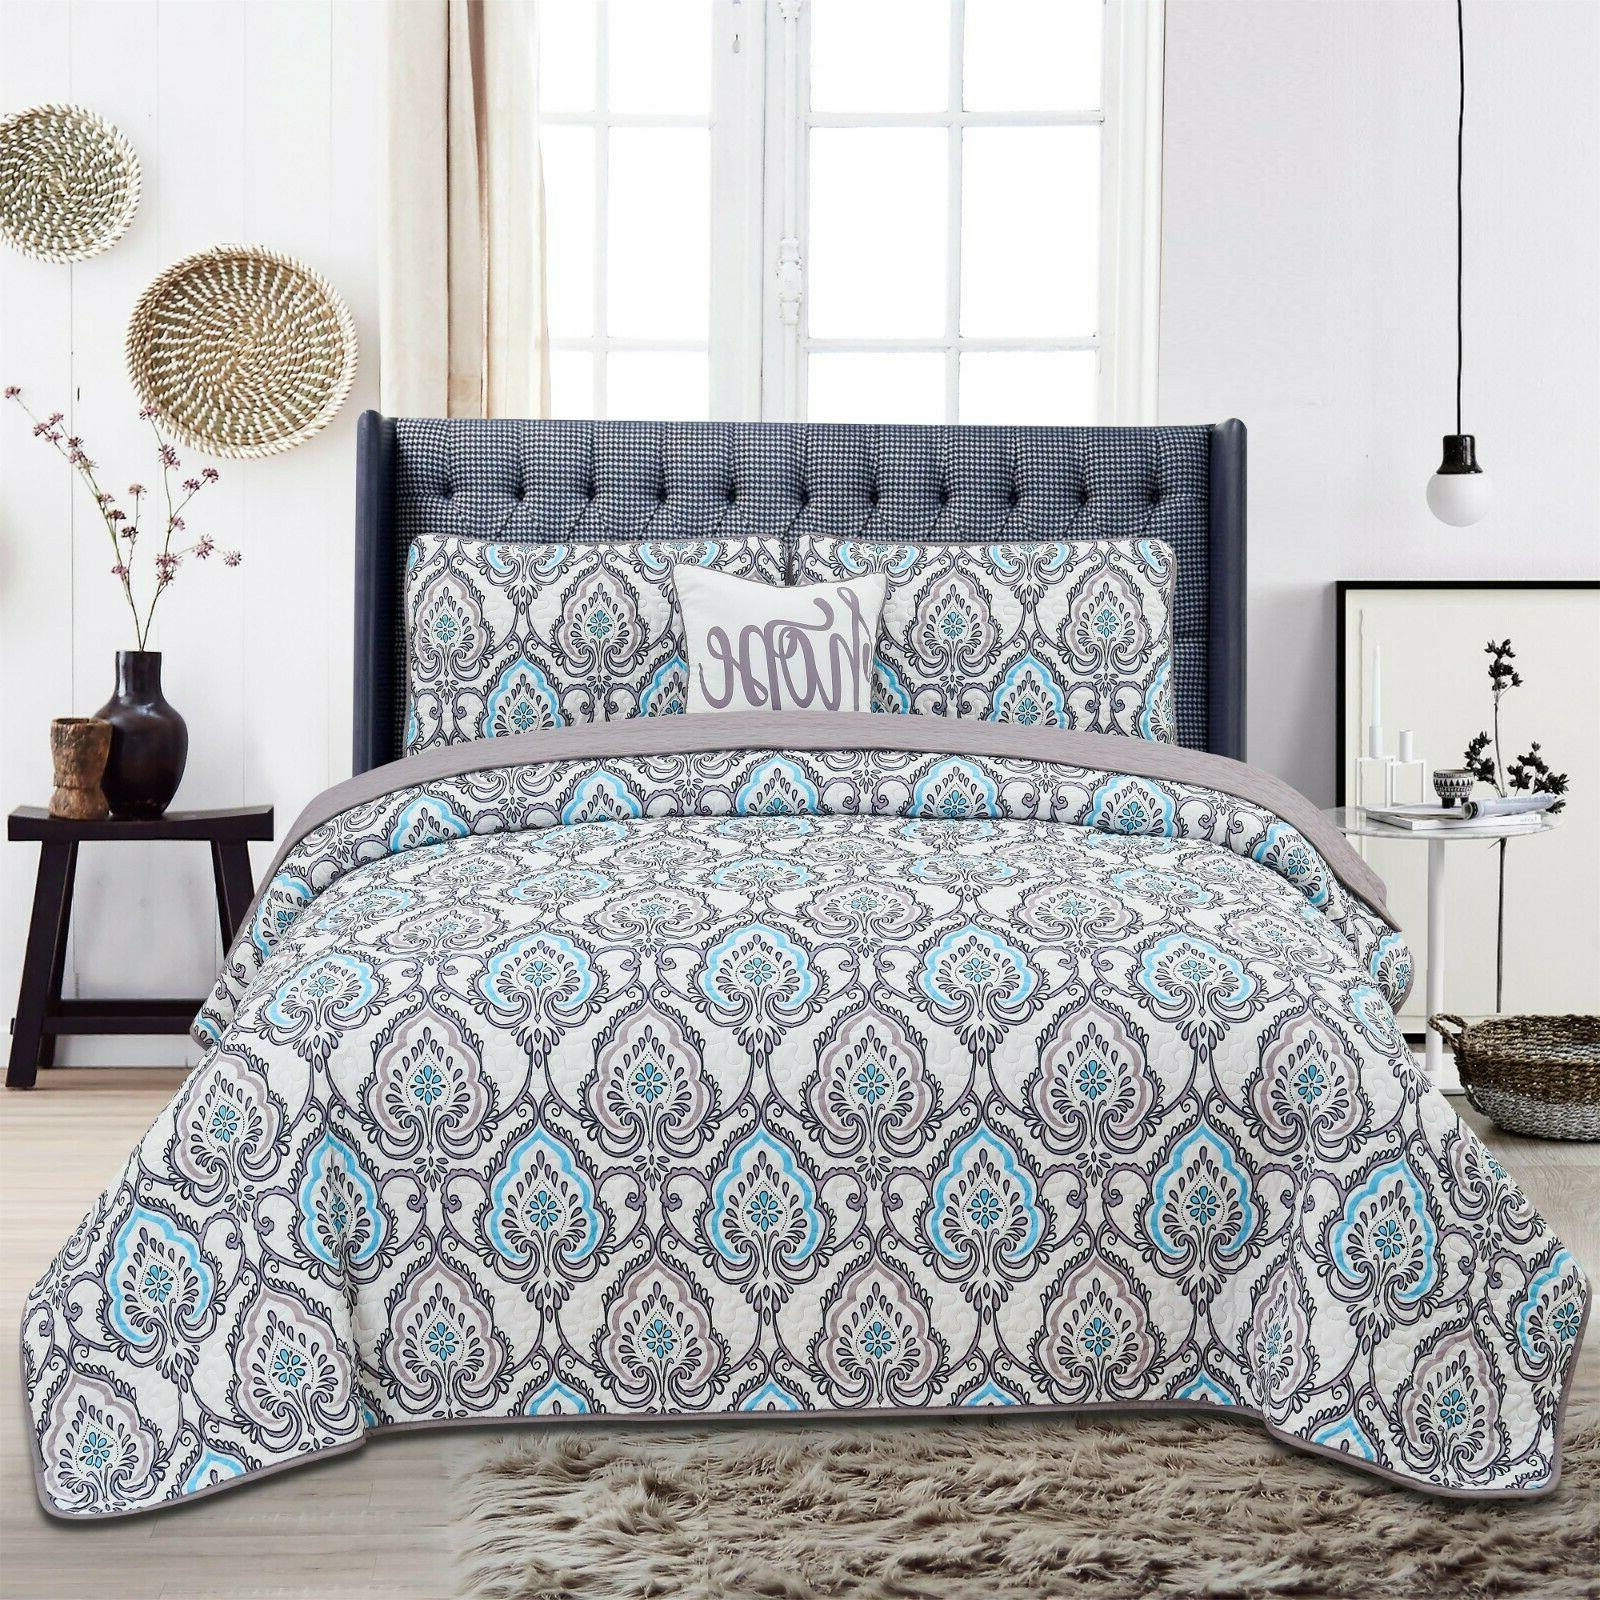 Queen Bedding Quilt King Bedding